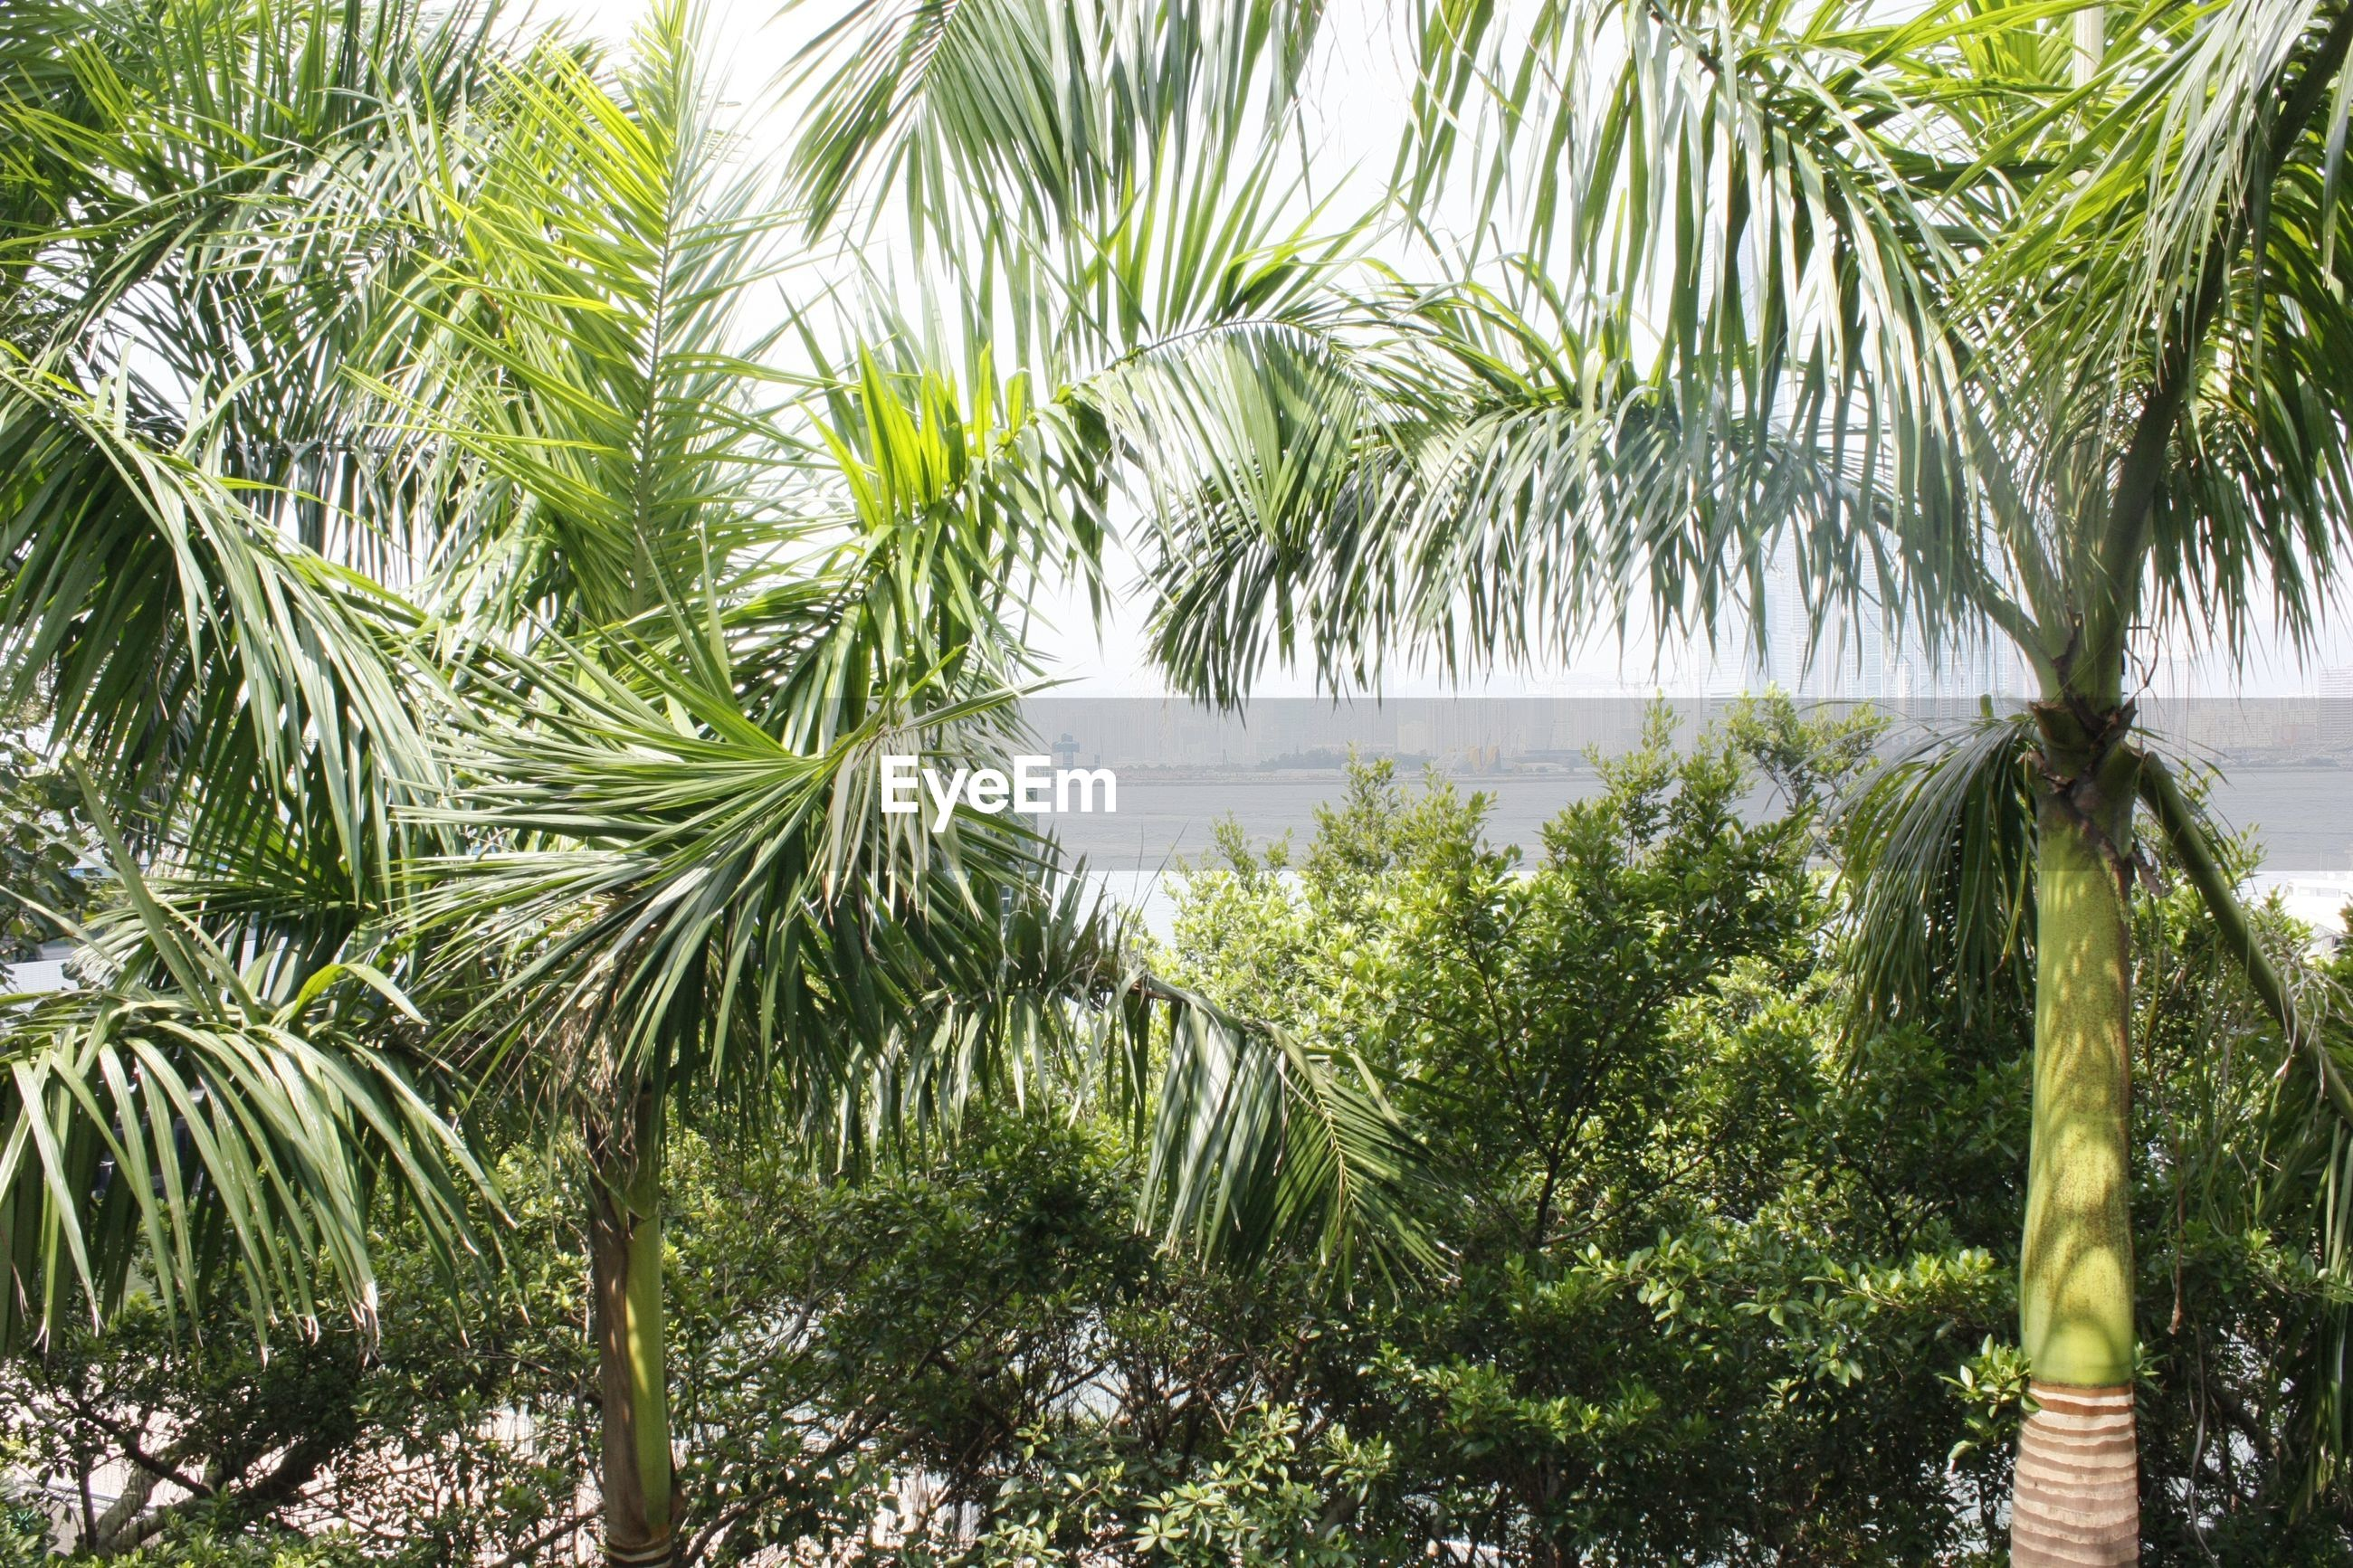 nature, green color, tree, palm tree, backgrounds, no people, beauty in nature, growth, water, outdoors, leaf, plant, sky, close-up, day, lush - description